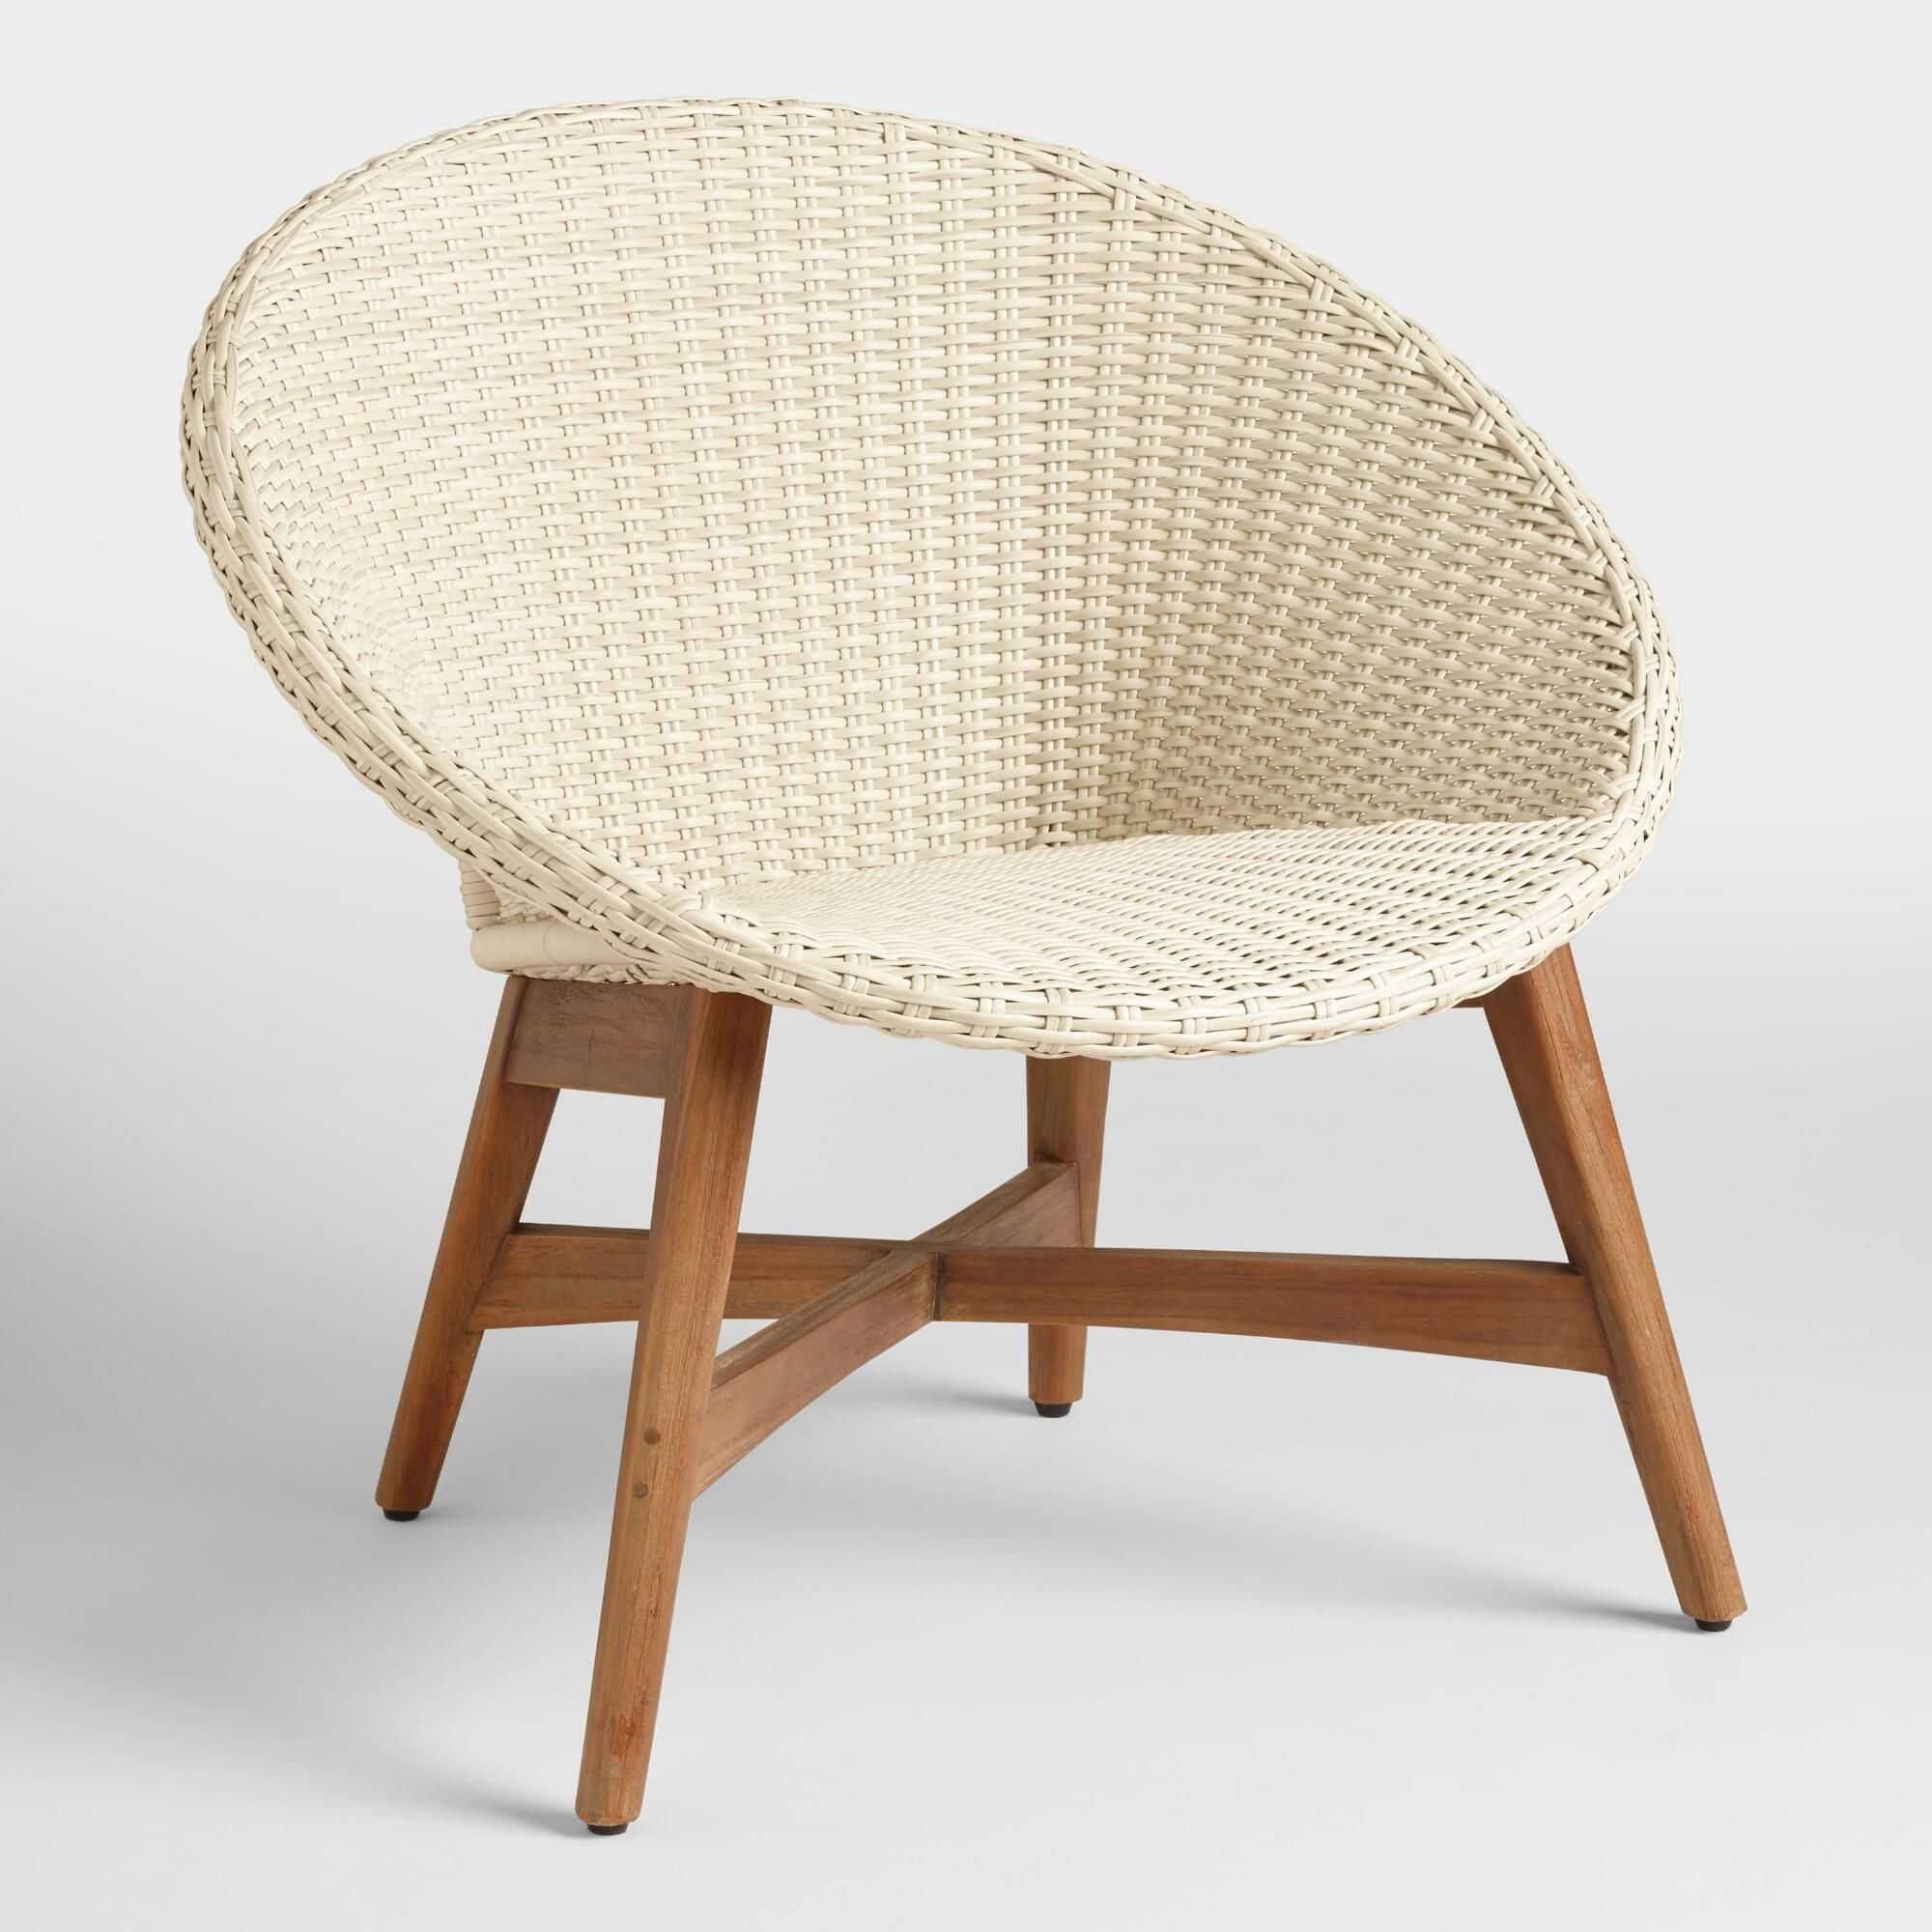 bring a casual, mid-century vibe to your outdoor area with our cozy